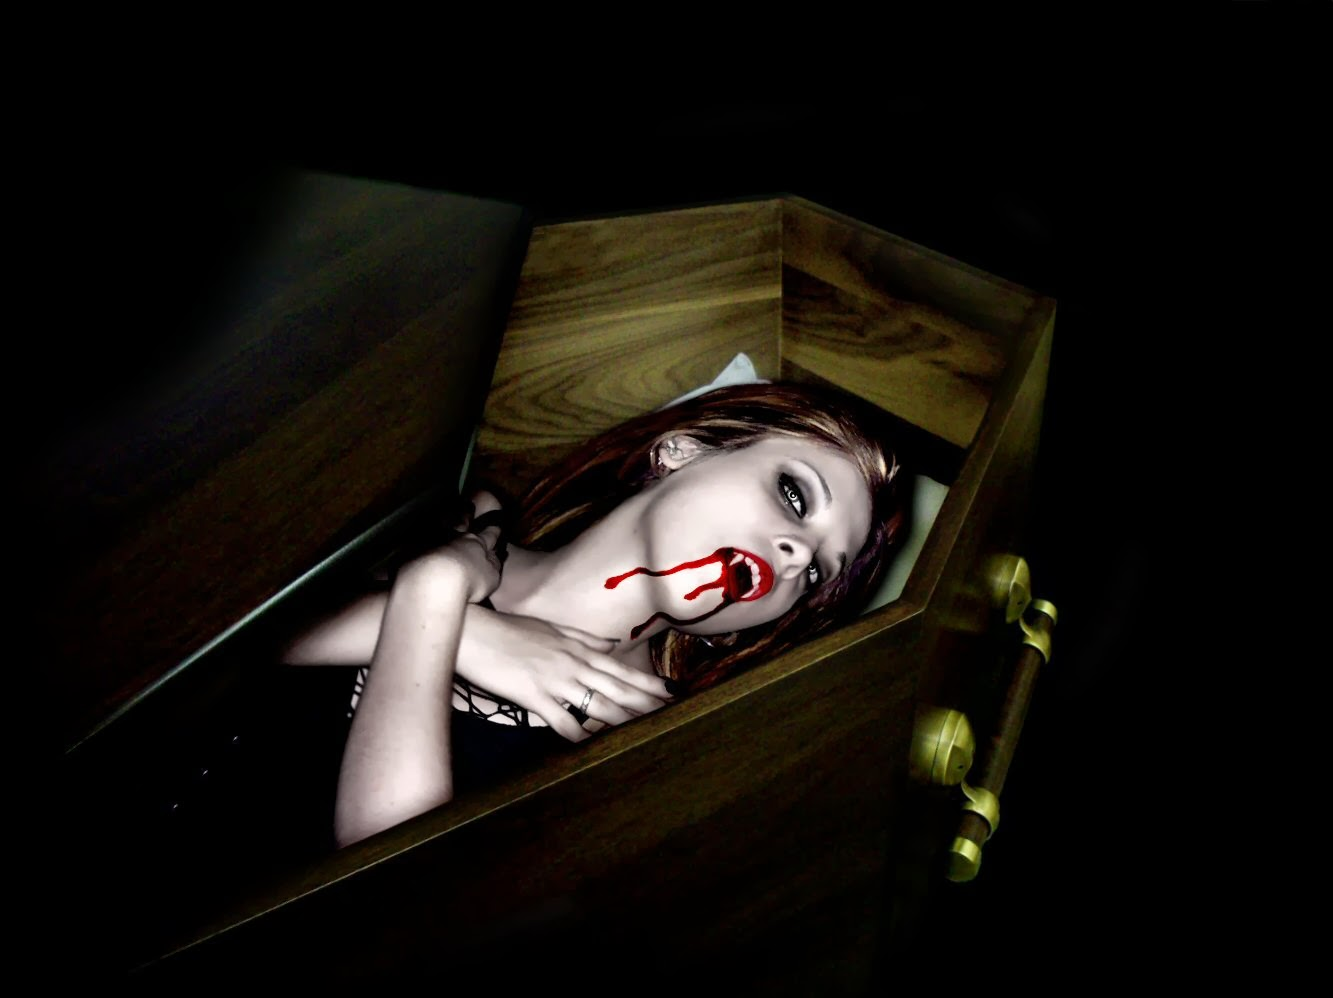 Vampire Wallpapers ~ HD Wallpapers   Funny Videos   Hot Girls Photos   Amazing Wallpapers ...